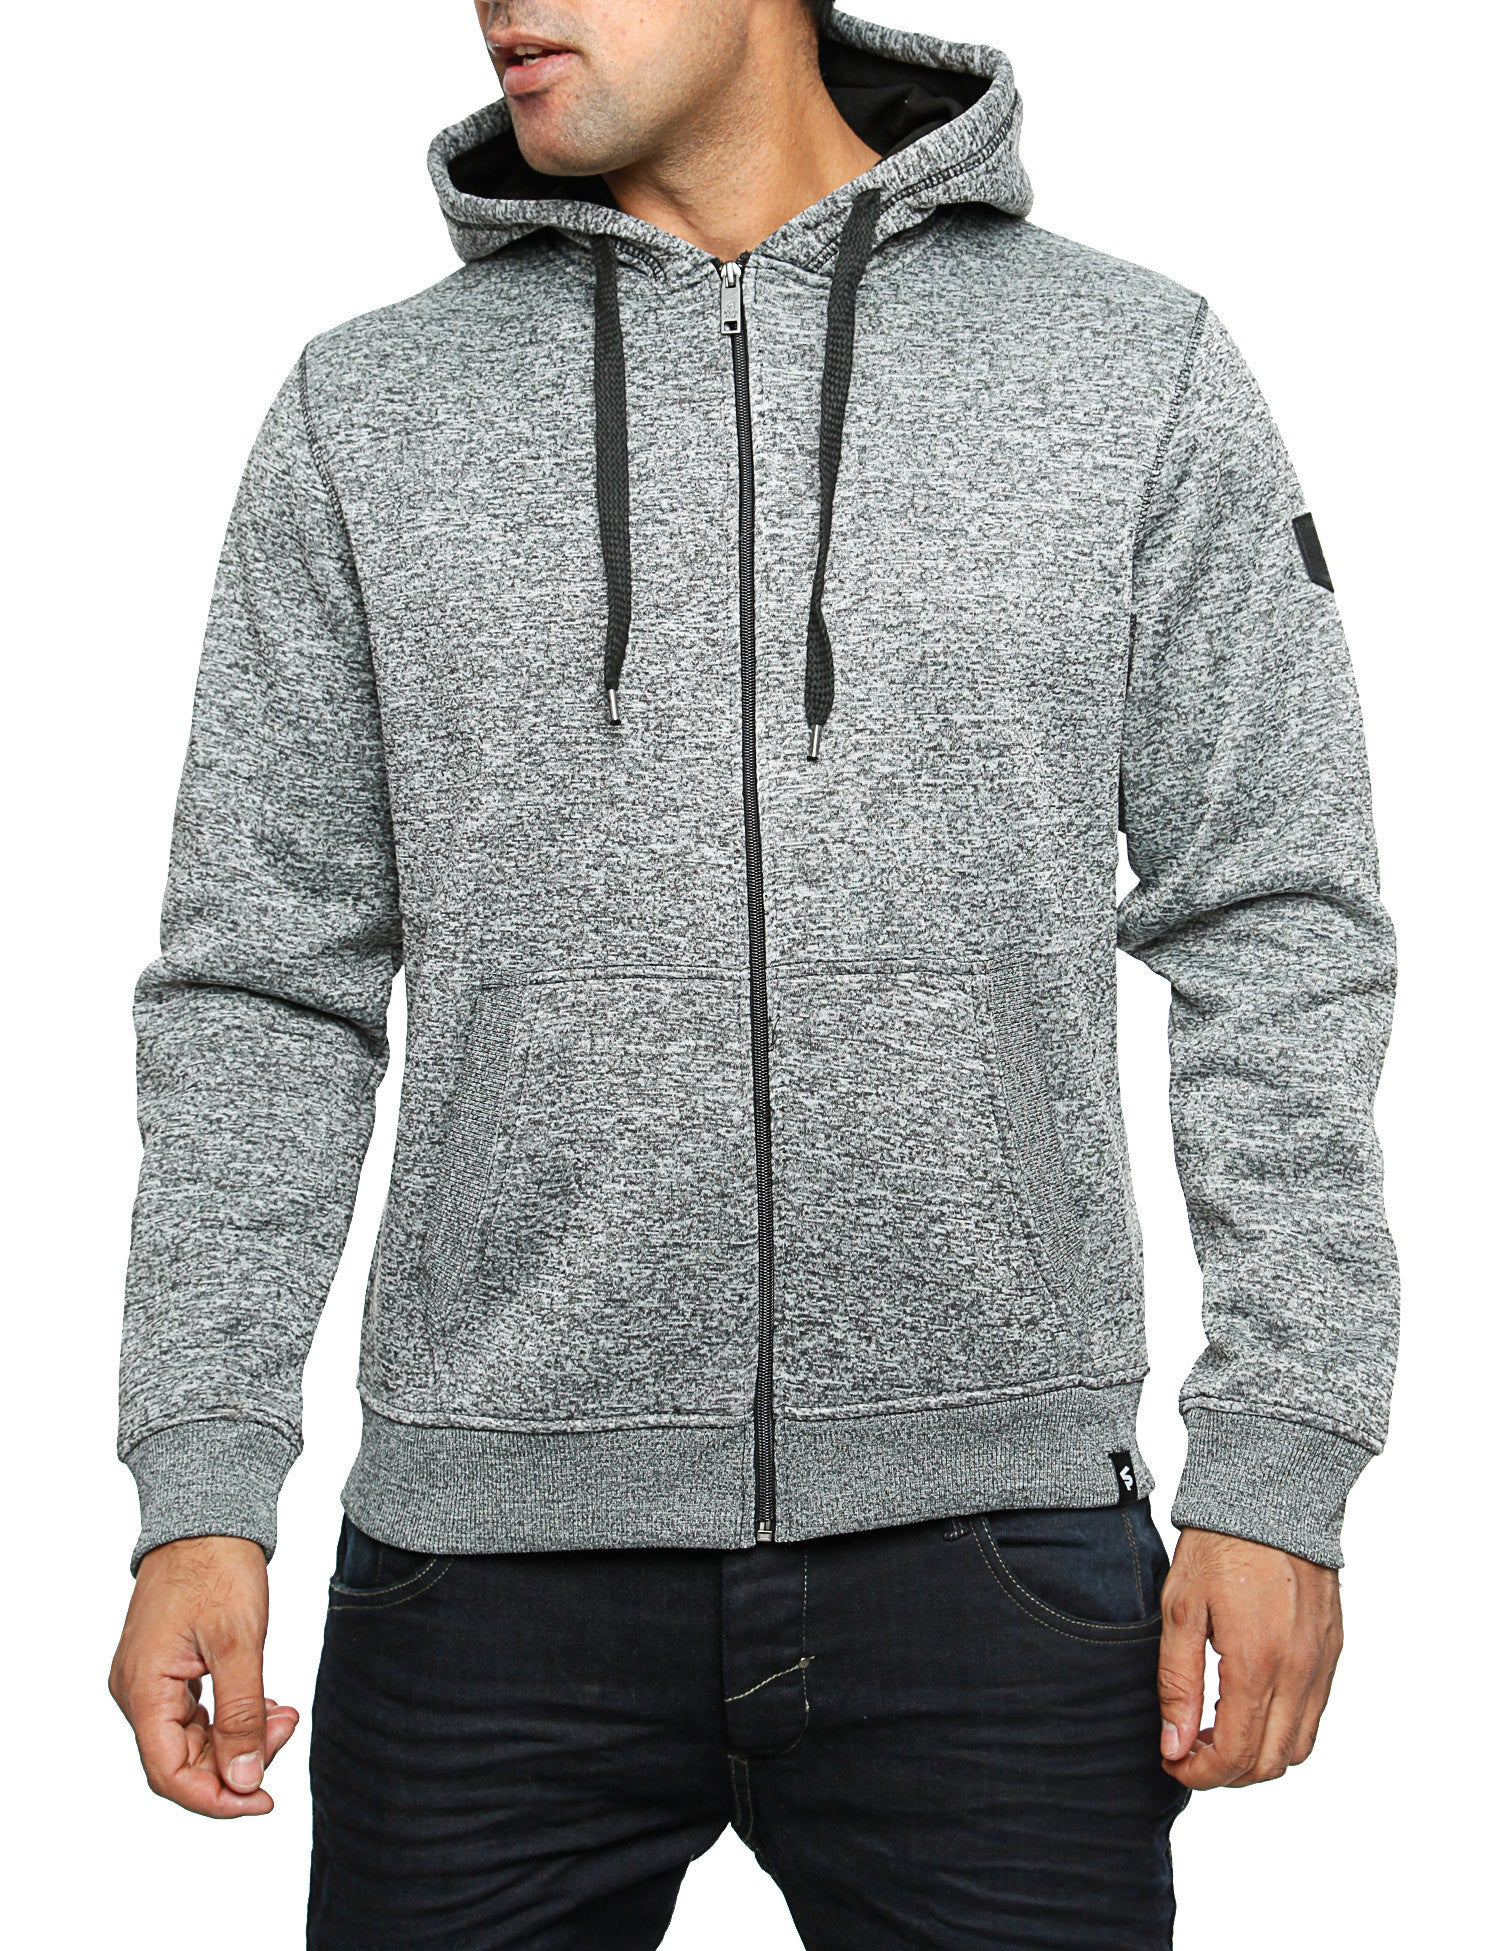 Southpole Zip Hoody 15321-1525 Marled Grey